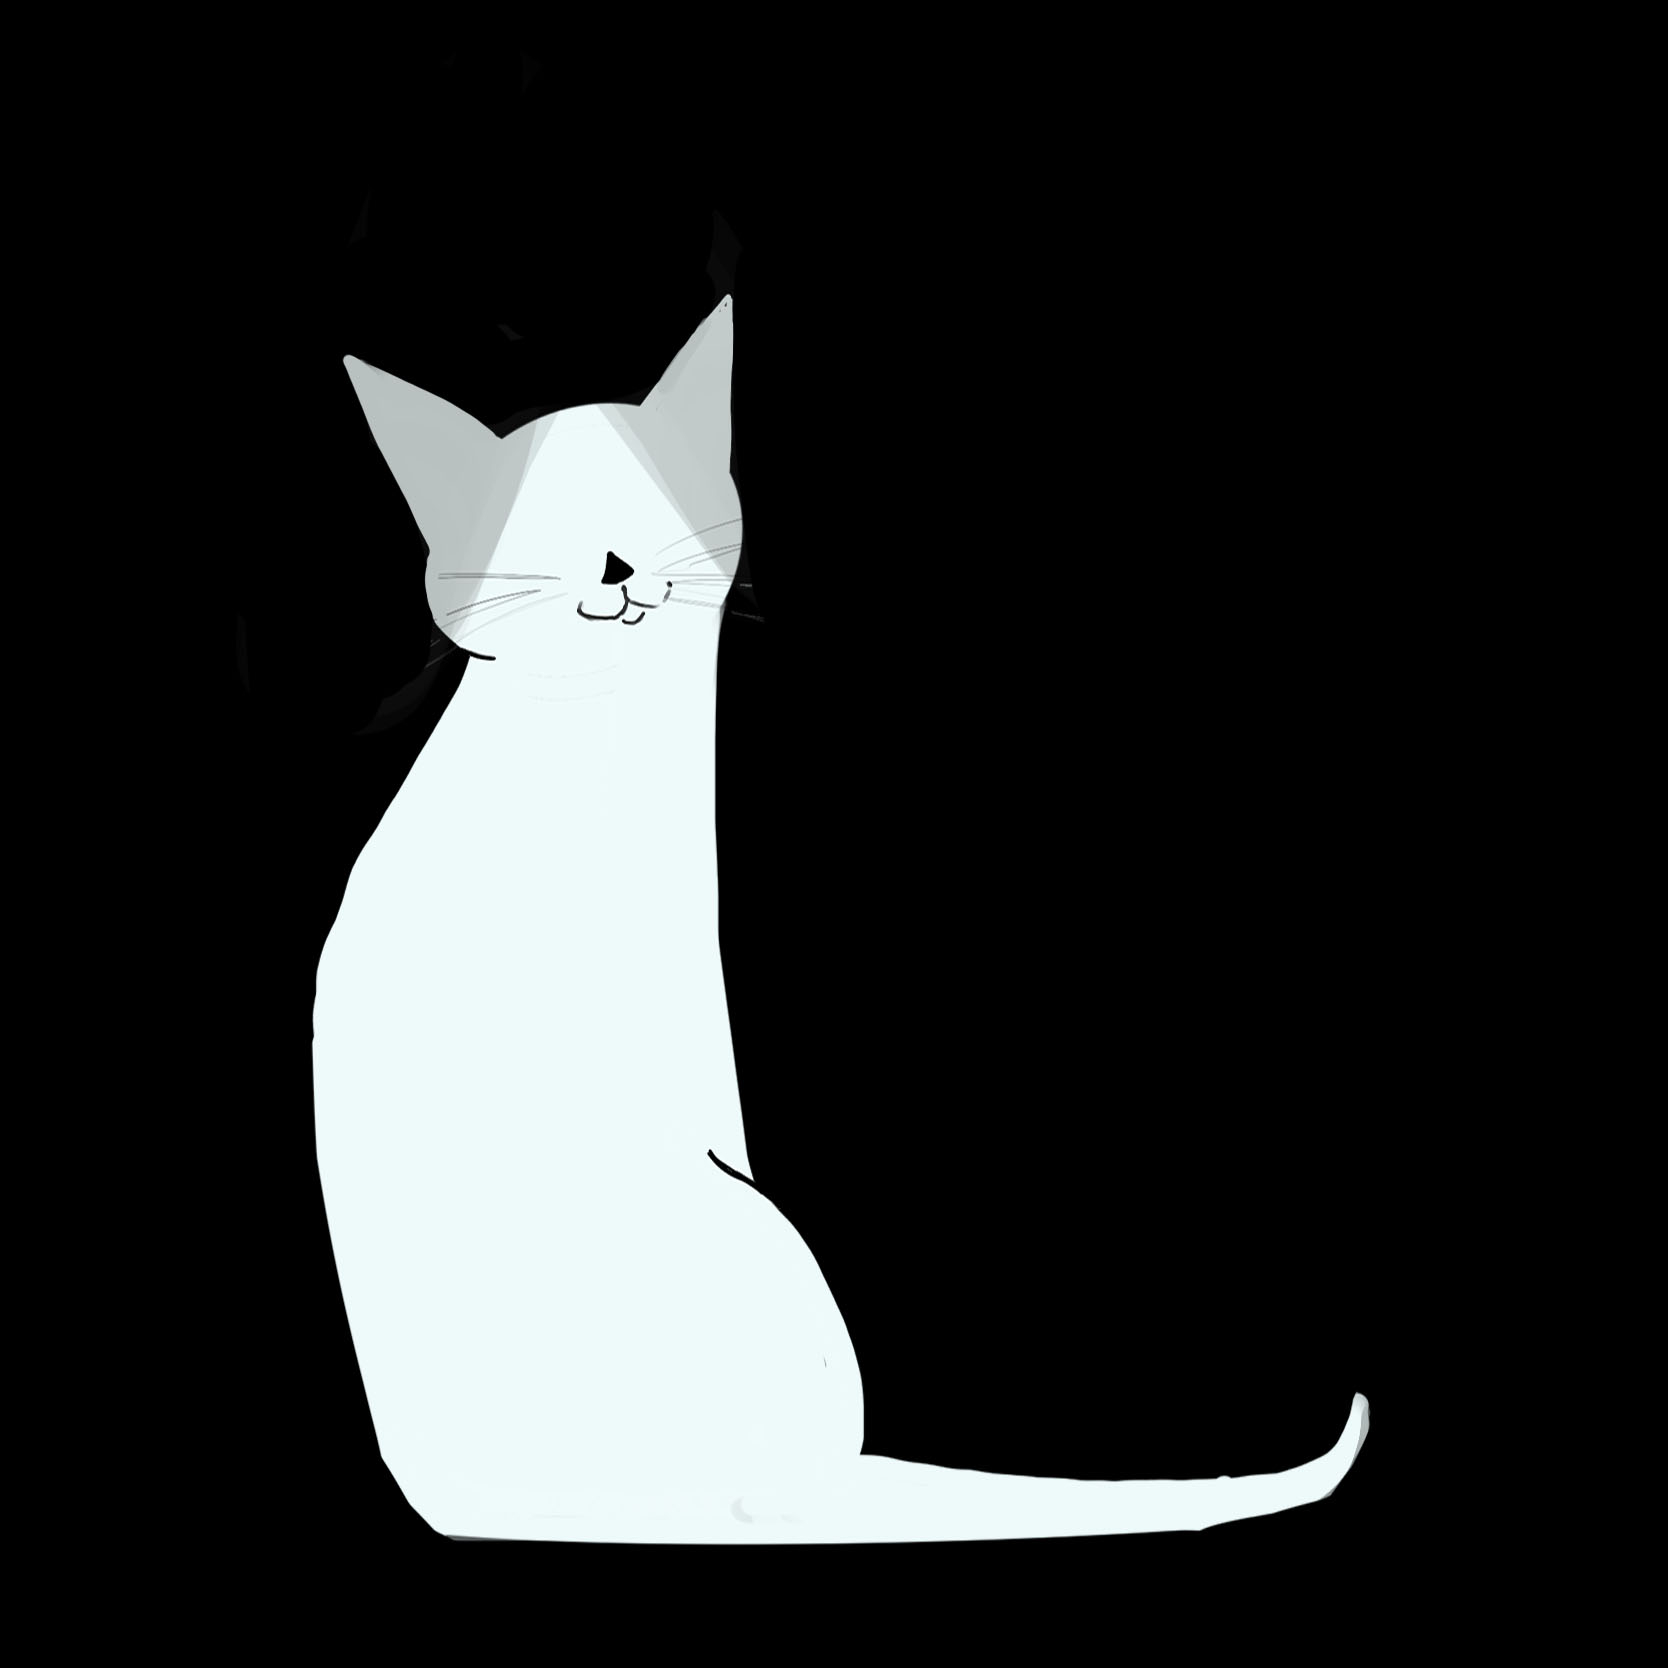 A personal logo - A black and white cat sitting calmly and looking ahead with its tail curled up with text that reads Catherine Claveau.